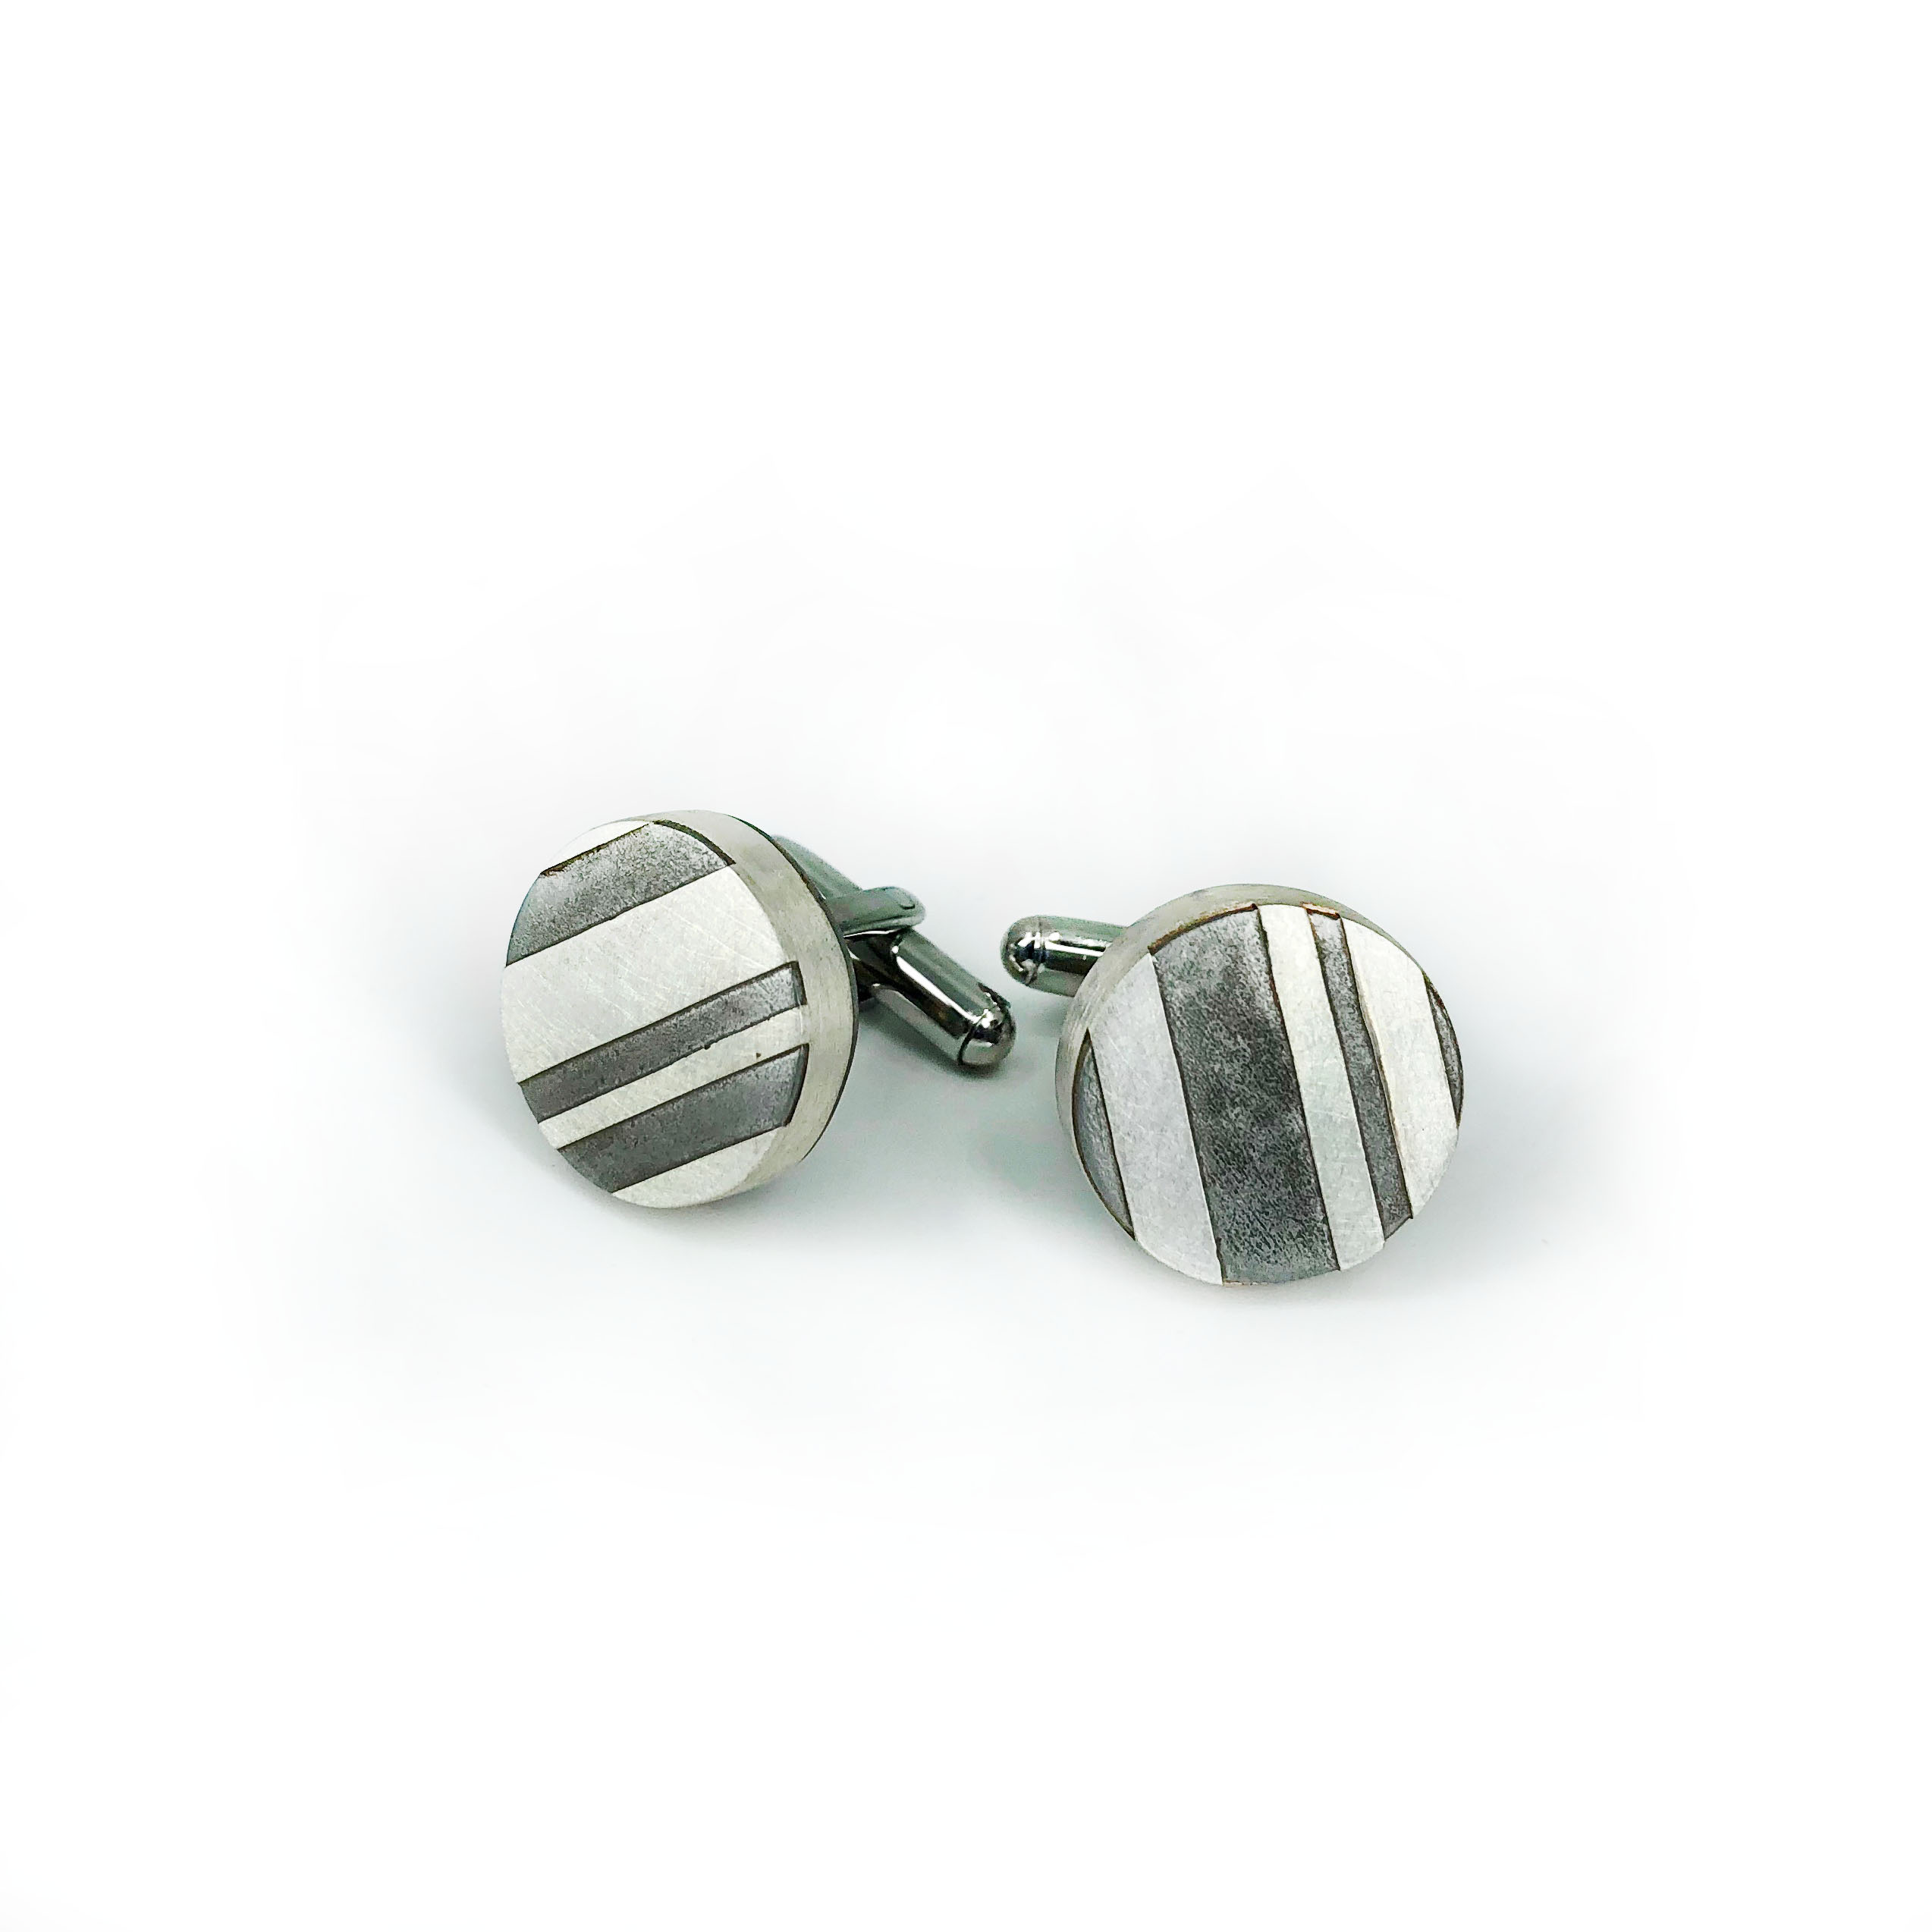 """Caitlin Zeller, """"Striped Cufflinks"""", hollow-formed - sterling silver and etched steel"""